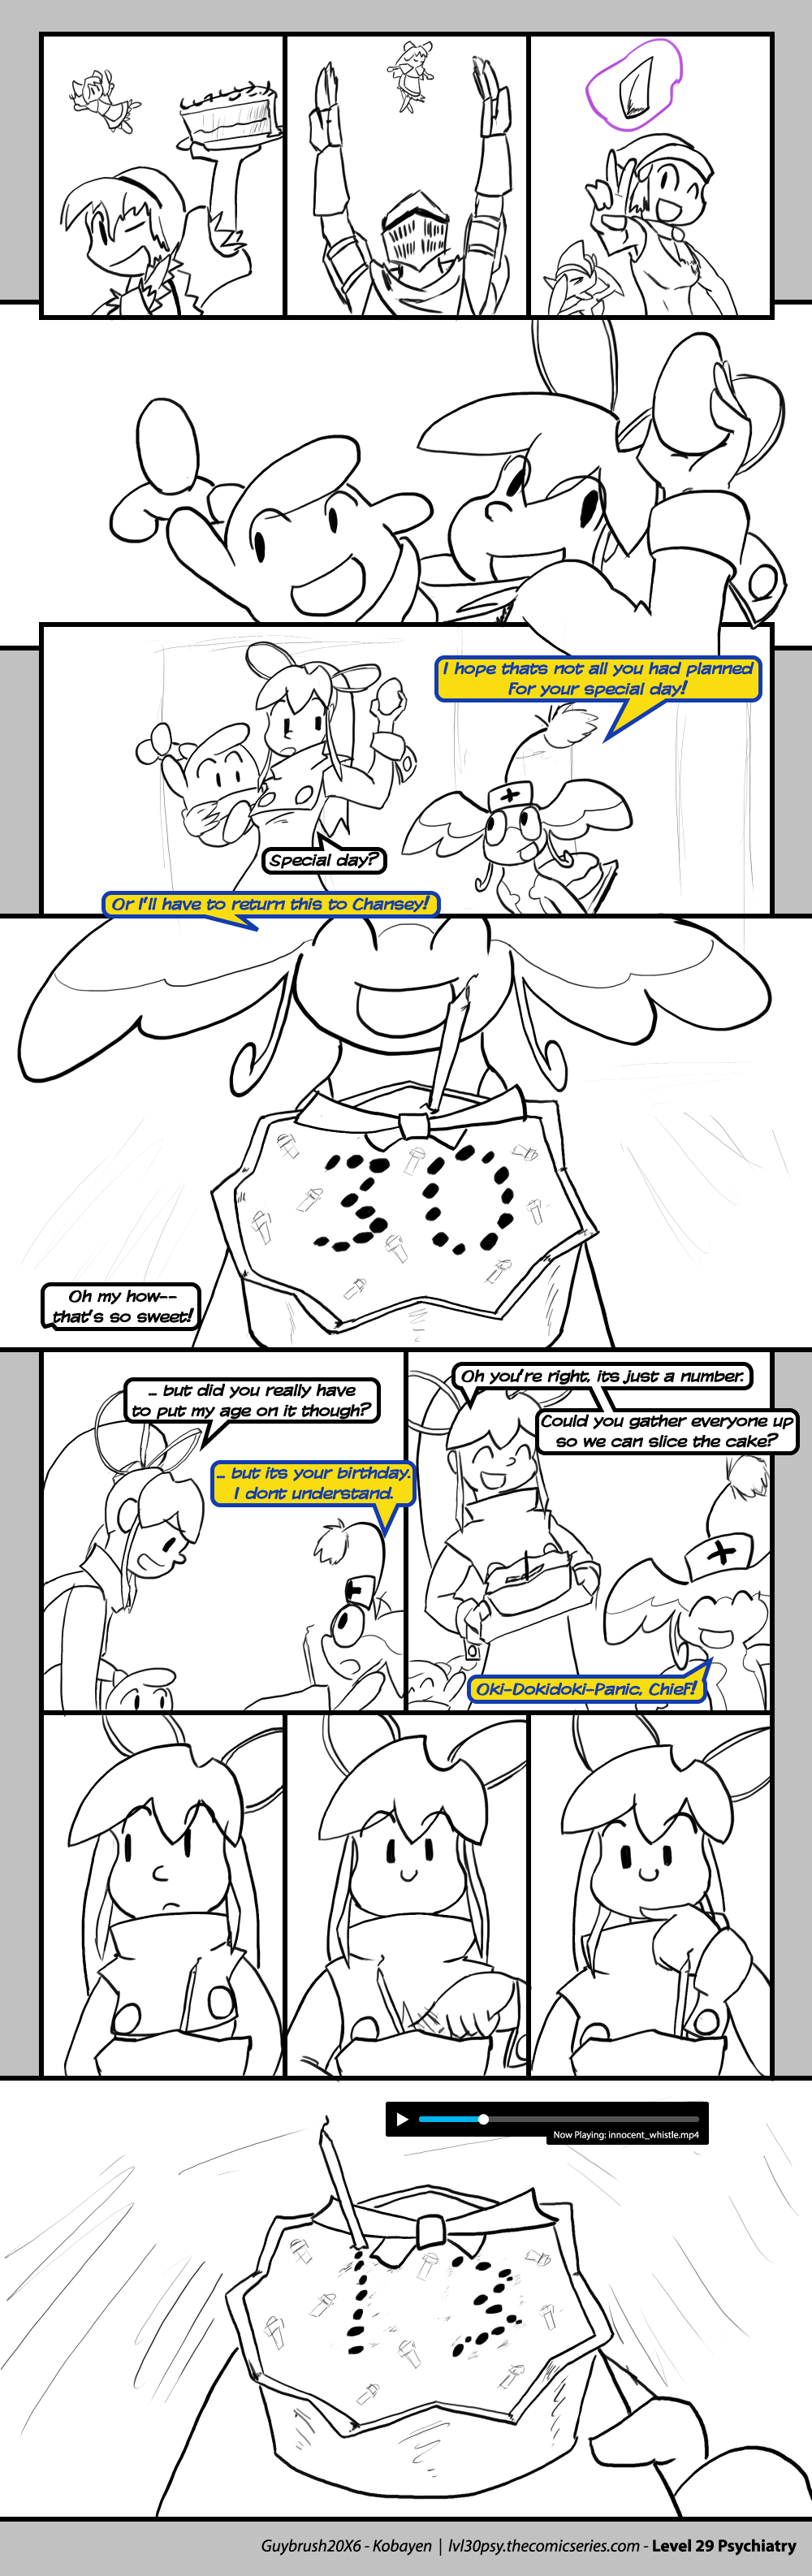 Roll's Egg-celent Adventure: Hatching Things Up